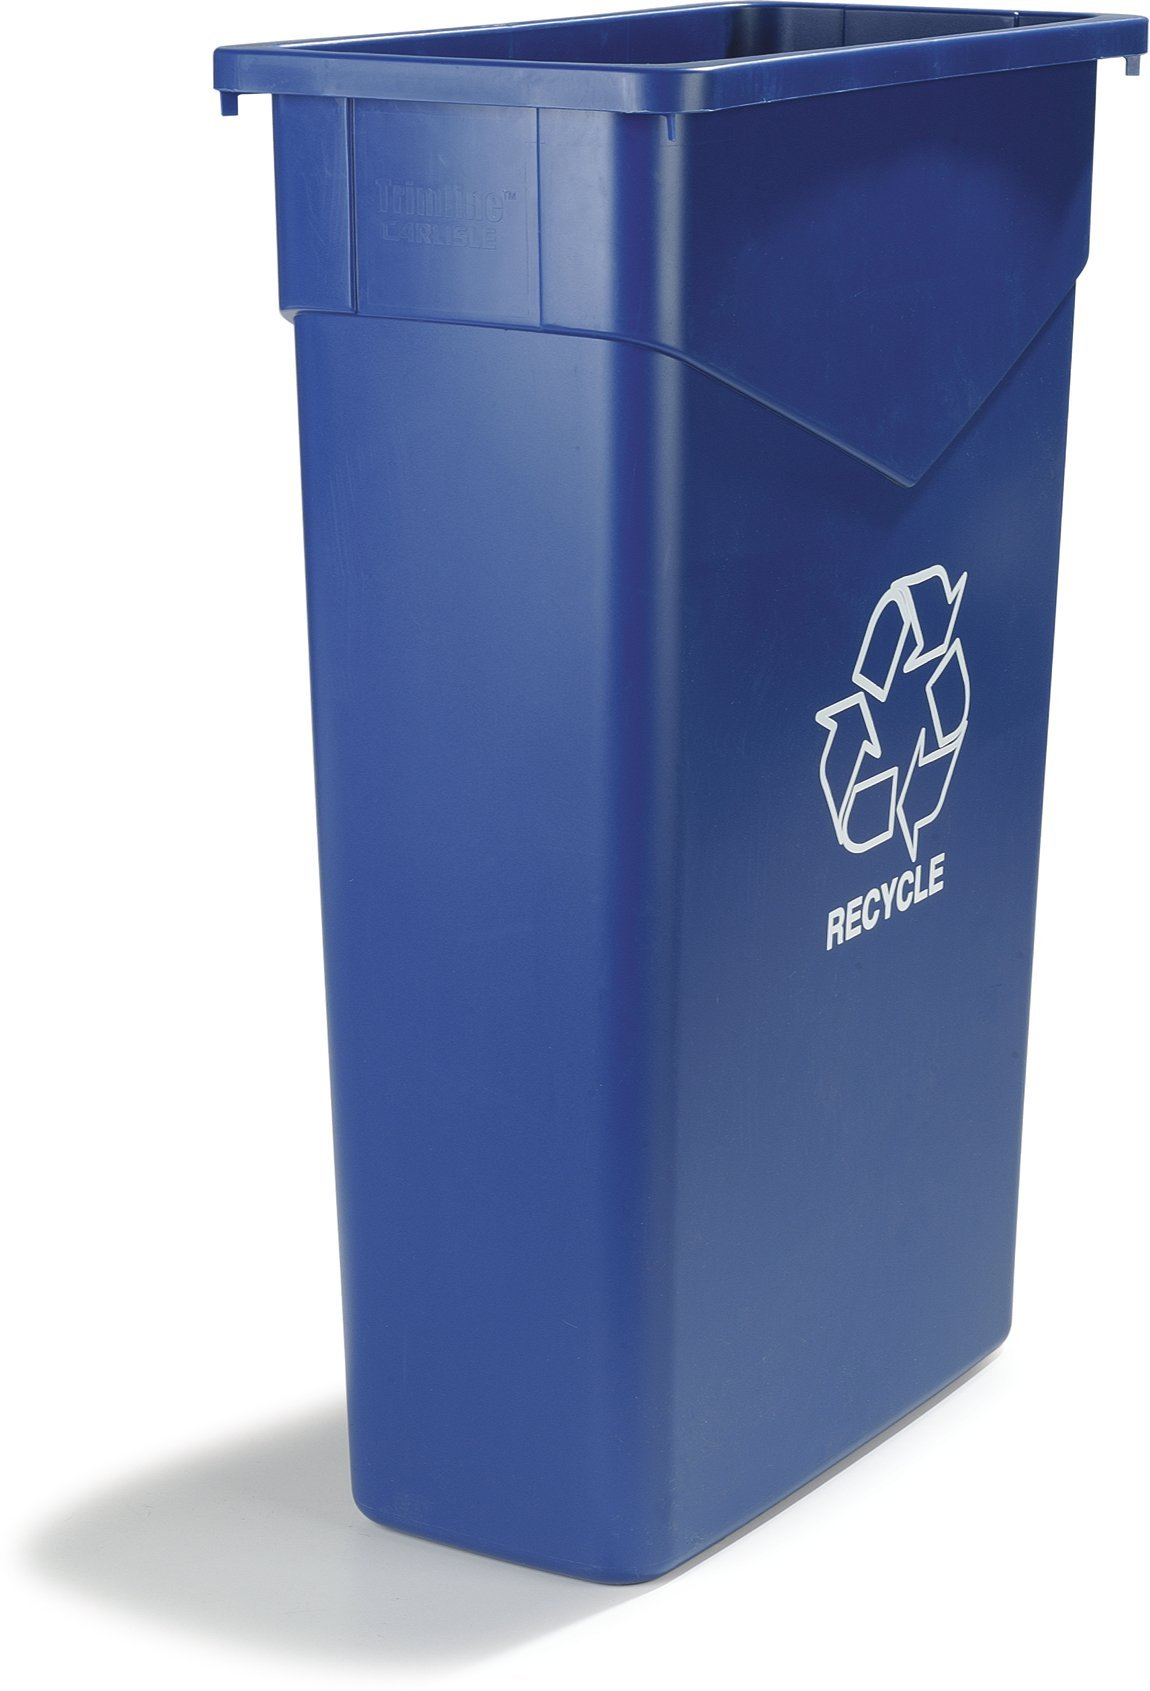 Carlisle 342023REC14 TrimLine LLDPE Recycle Can, 23 Gallon Capacity, 20'' Length x 11'' Width x 29.88'' Height, Blue